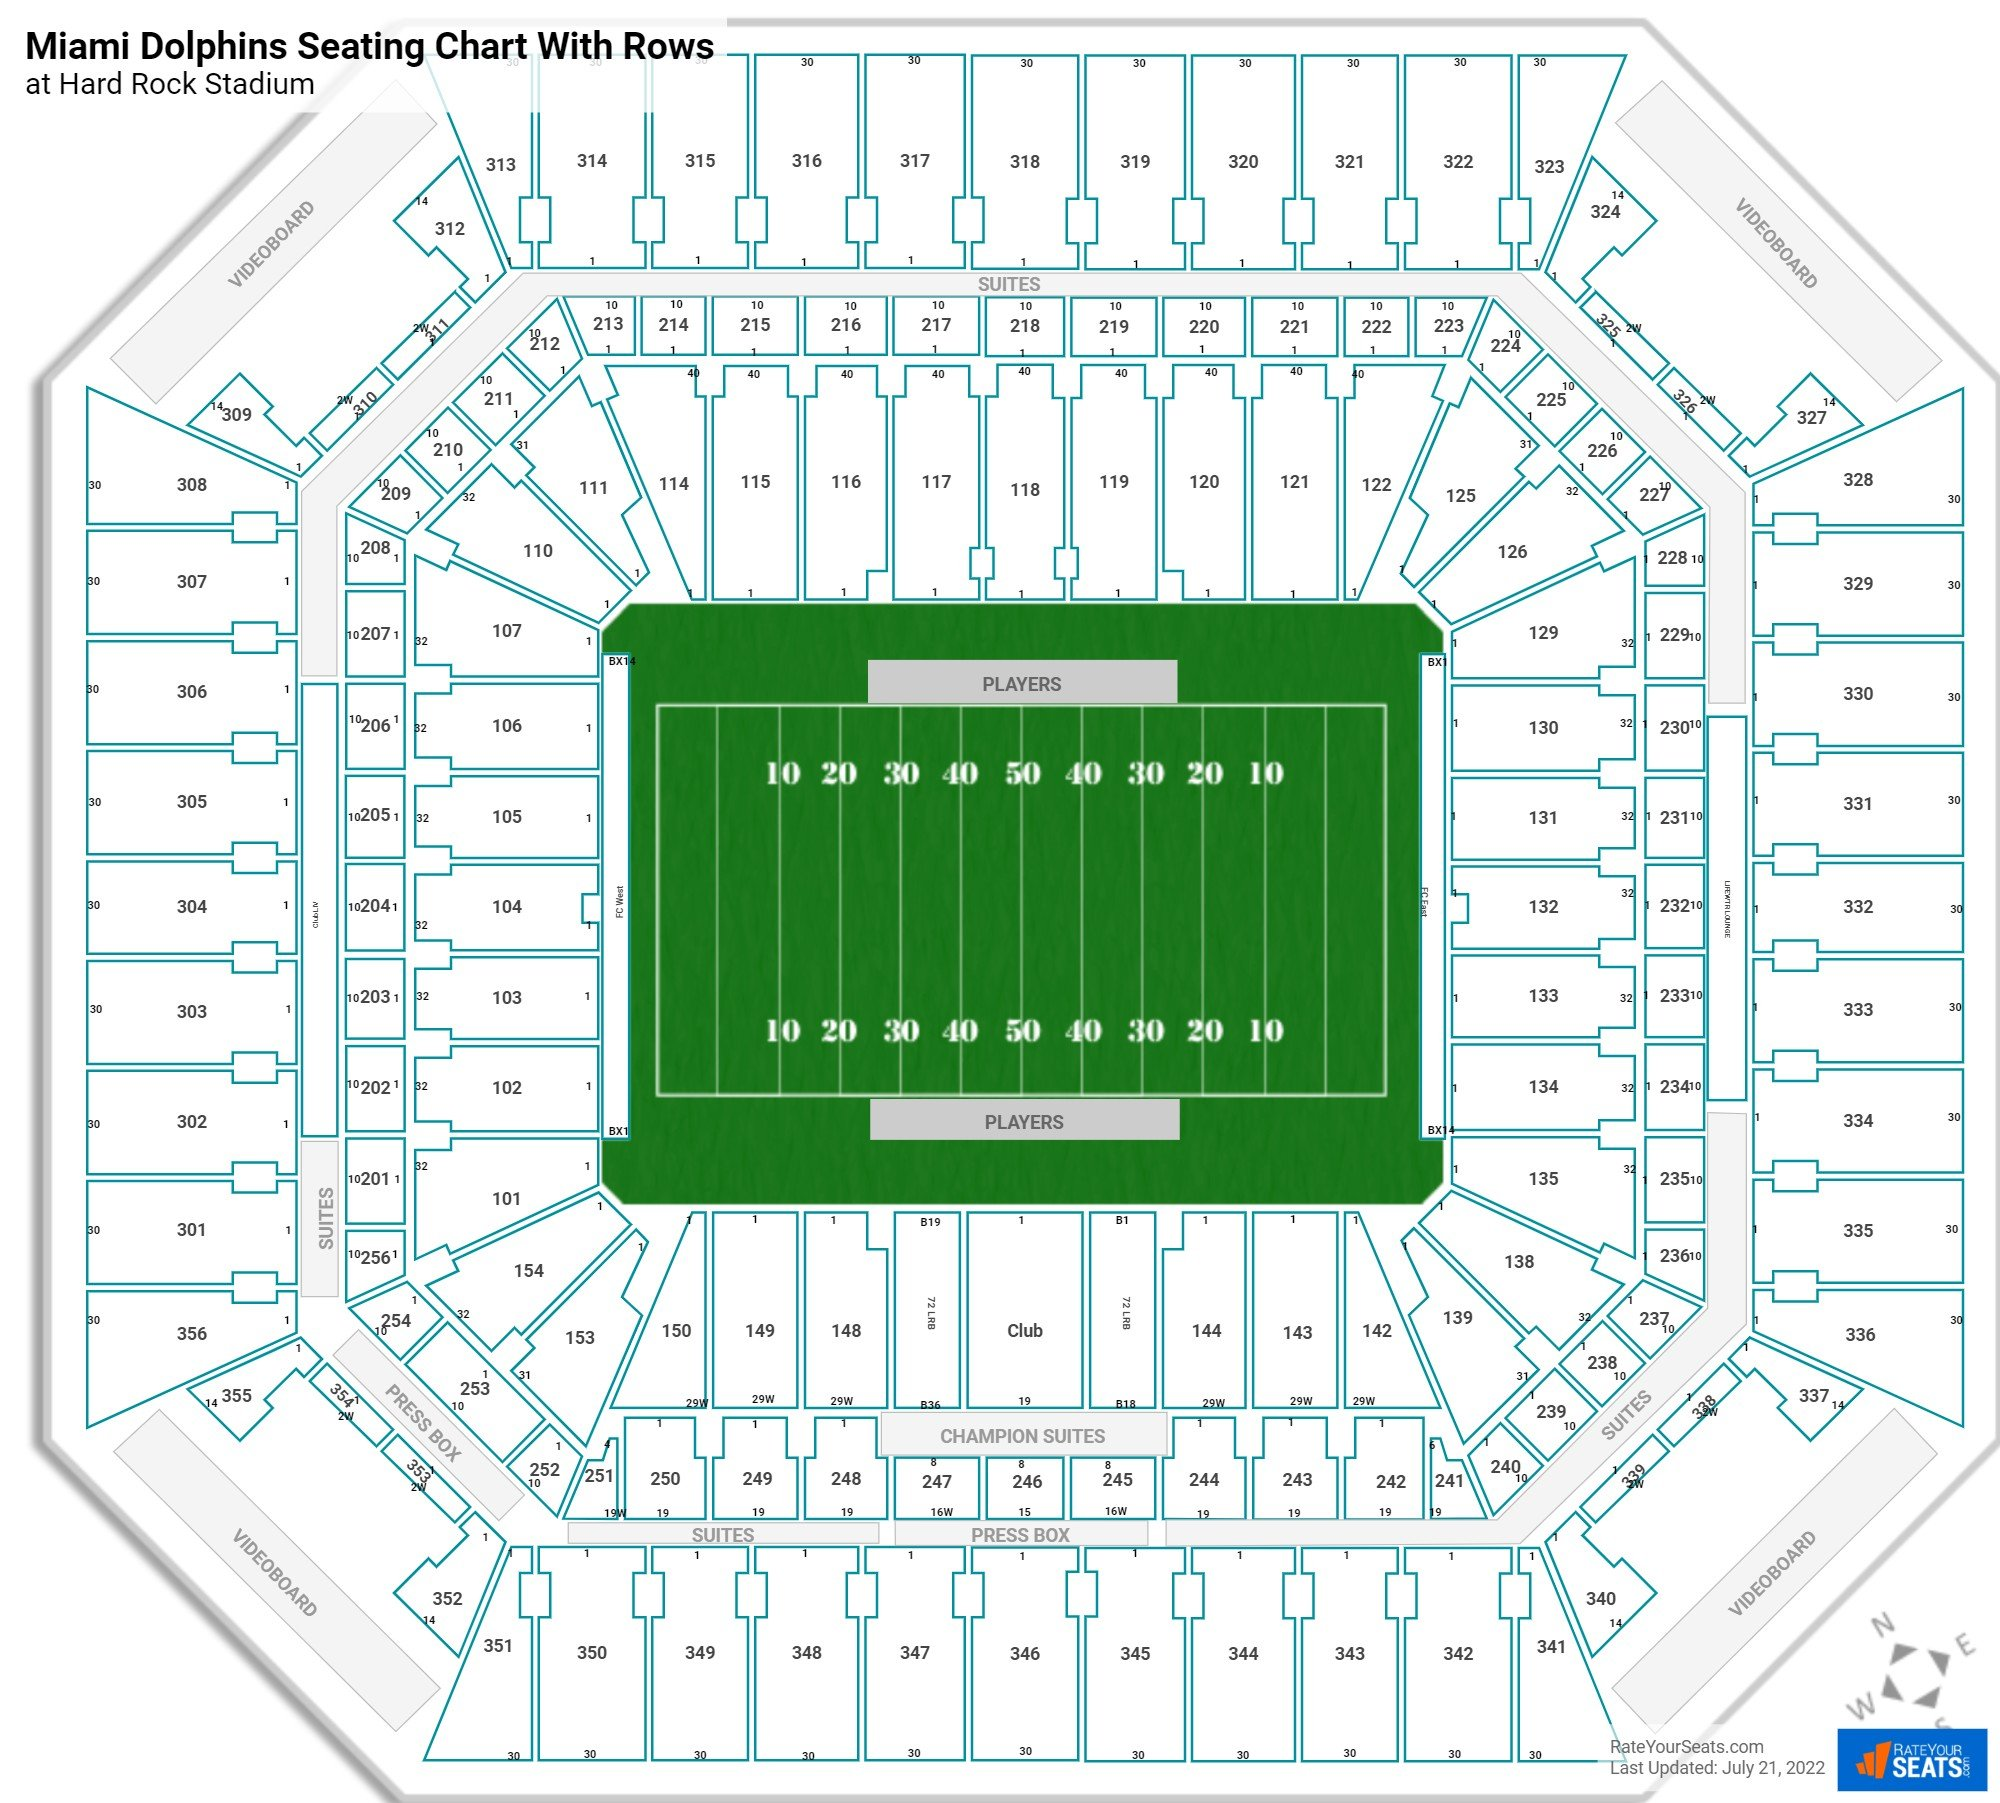 hard rock stadium seating for dolphins games and miami fl